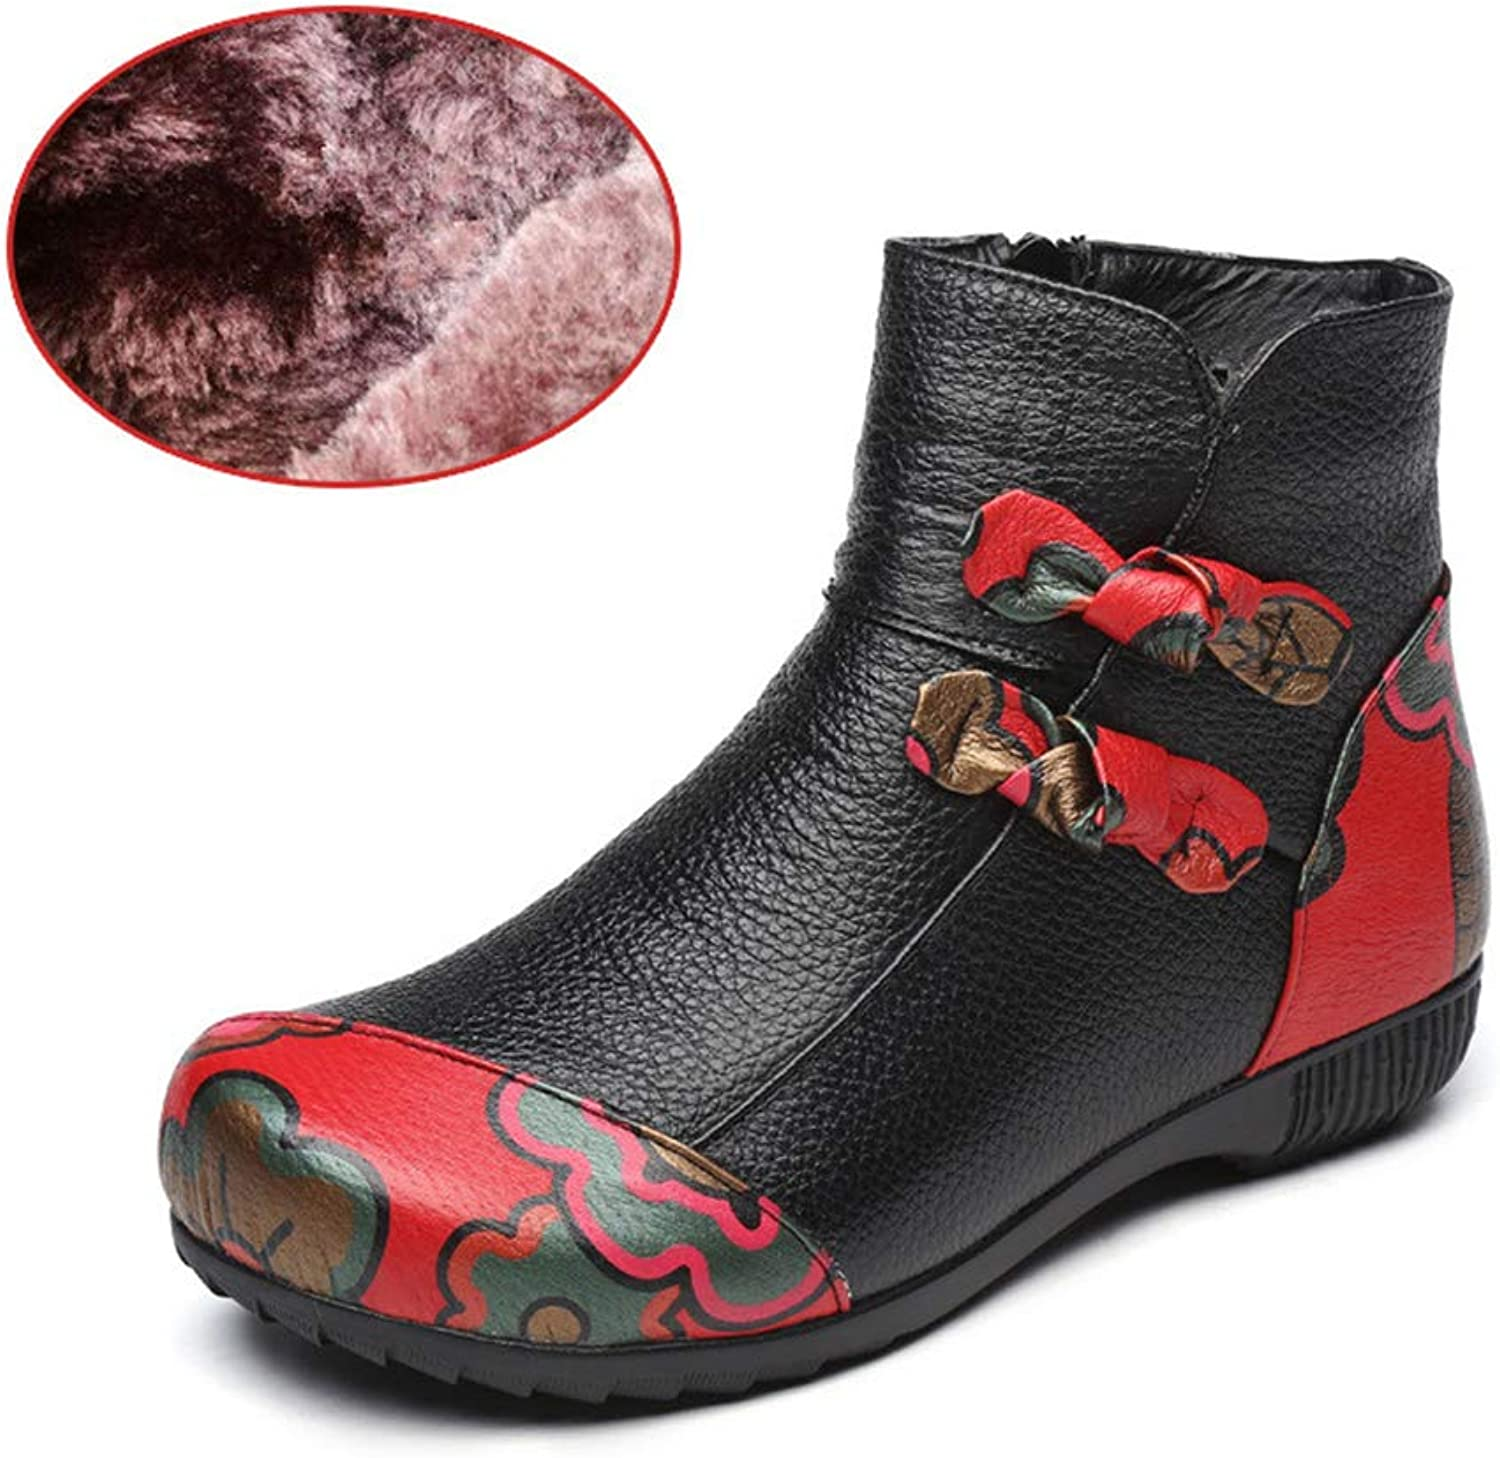 Women shoes Soft Warm Slippers Pregnant Non-Slip Cotton shoes Christmas shoes Plush Women shoes shoes